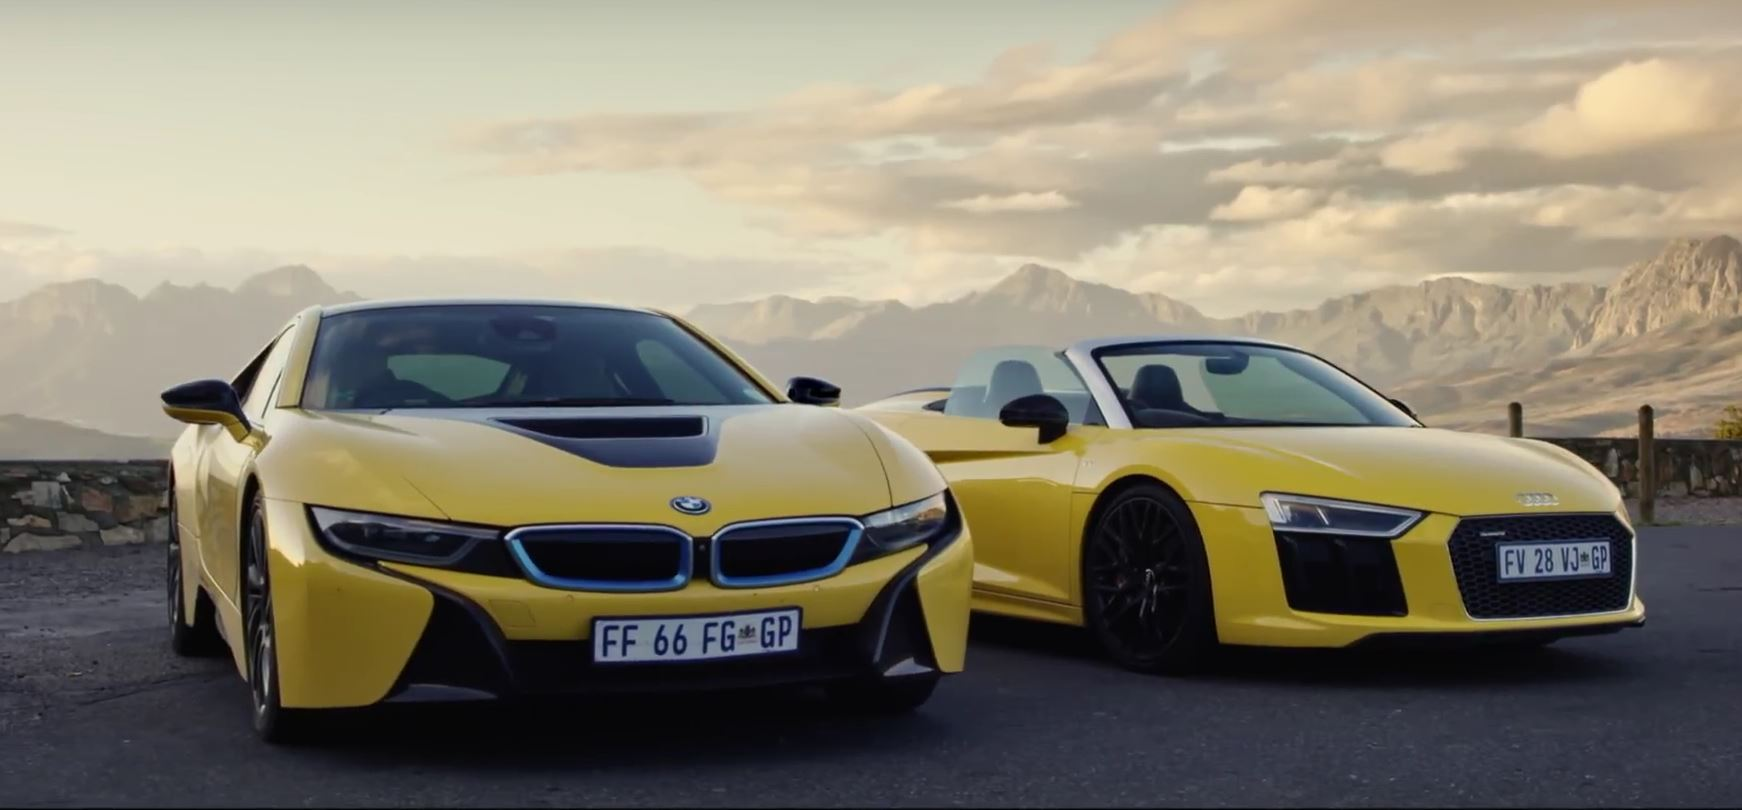 BMW i8 vs. Audi R8 Spyder: Two Different Supercars That ...